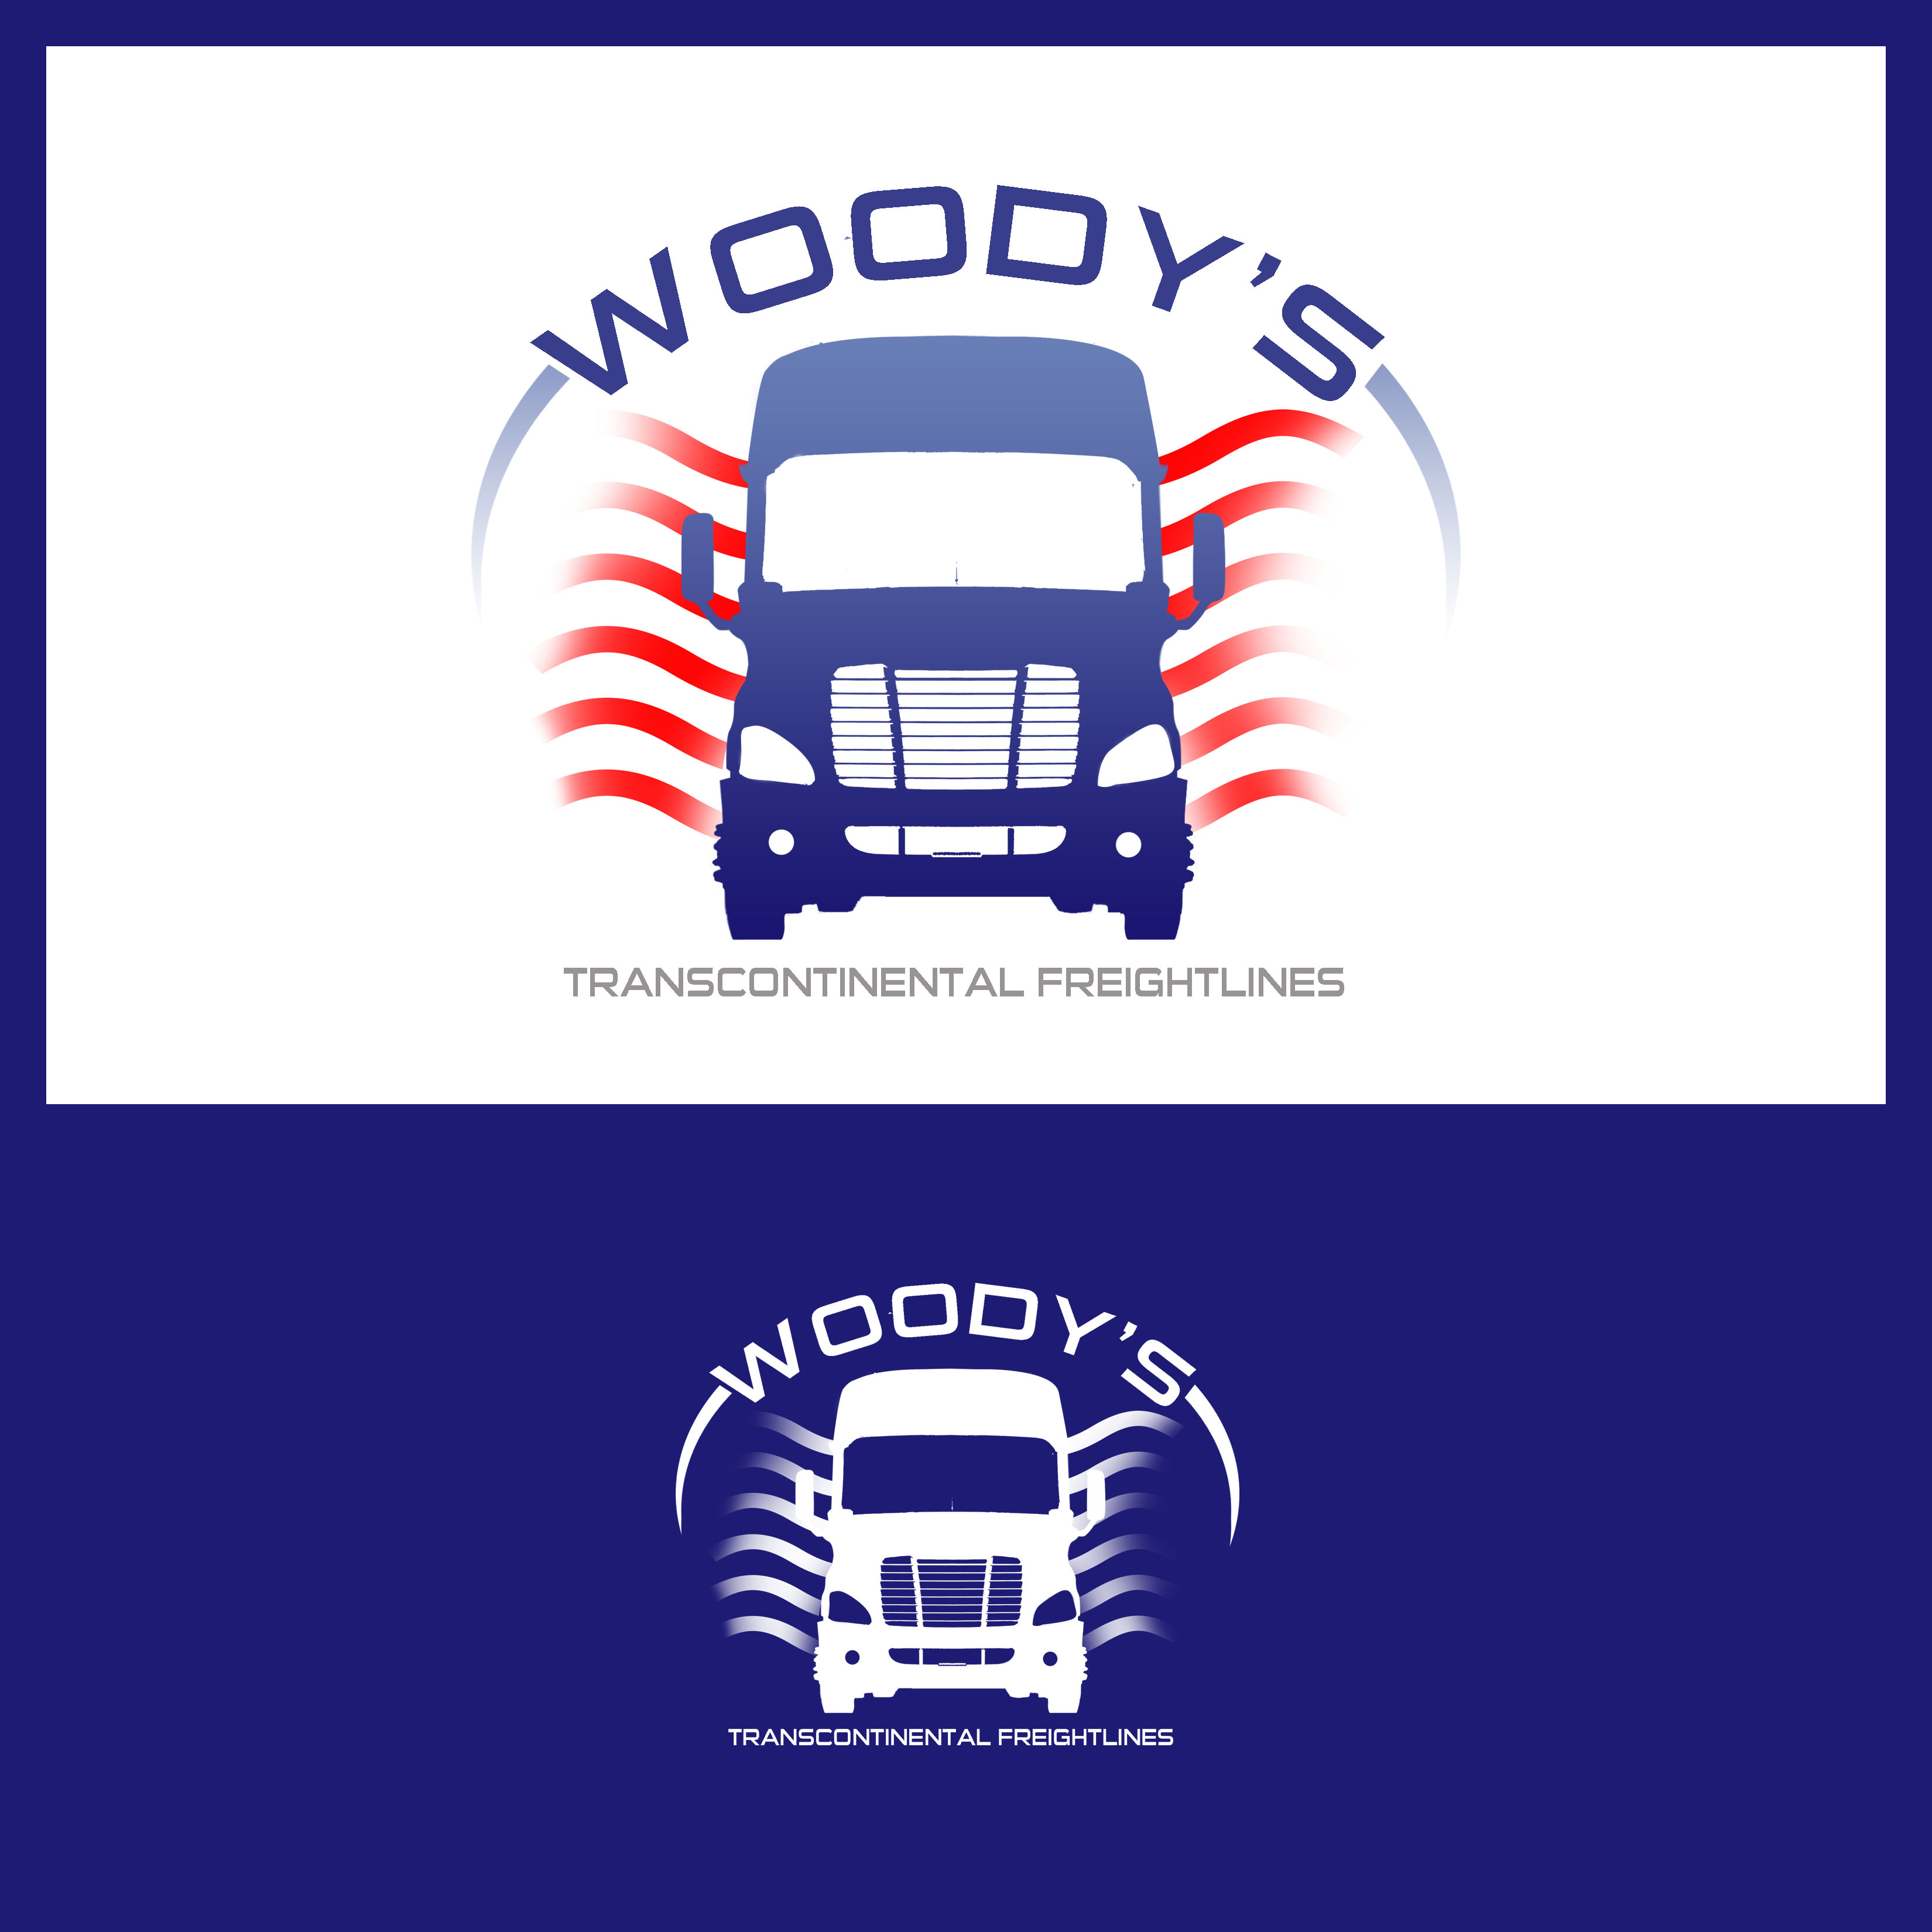 Logo Design by Allan Esclamado - Entry No. 74 in the Logo Design Contest Creative Logo Design for Woody's Transcontinental Freightlines.